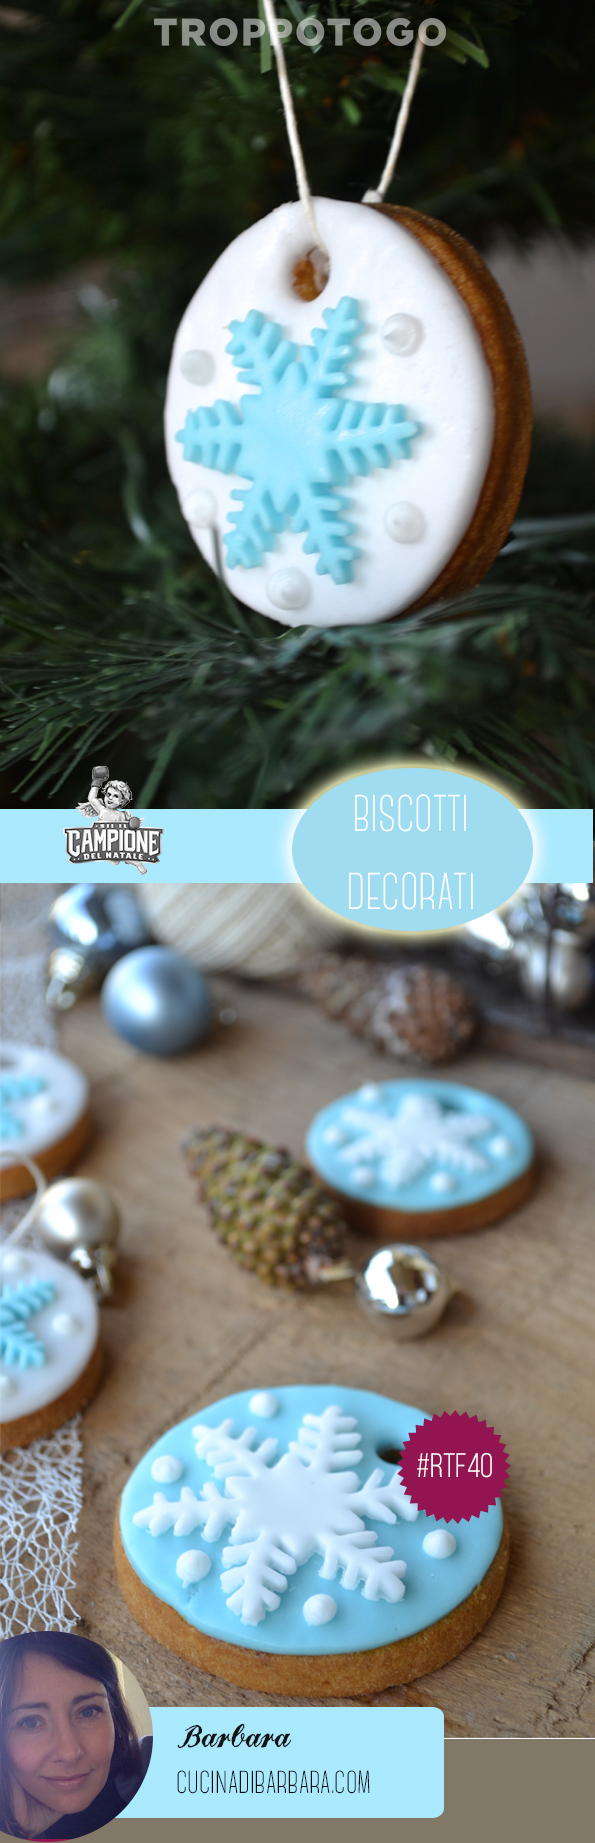 biscotti per decorare